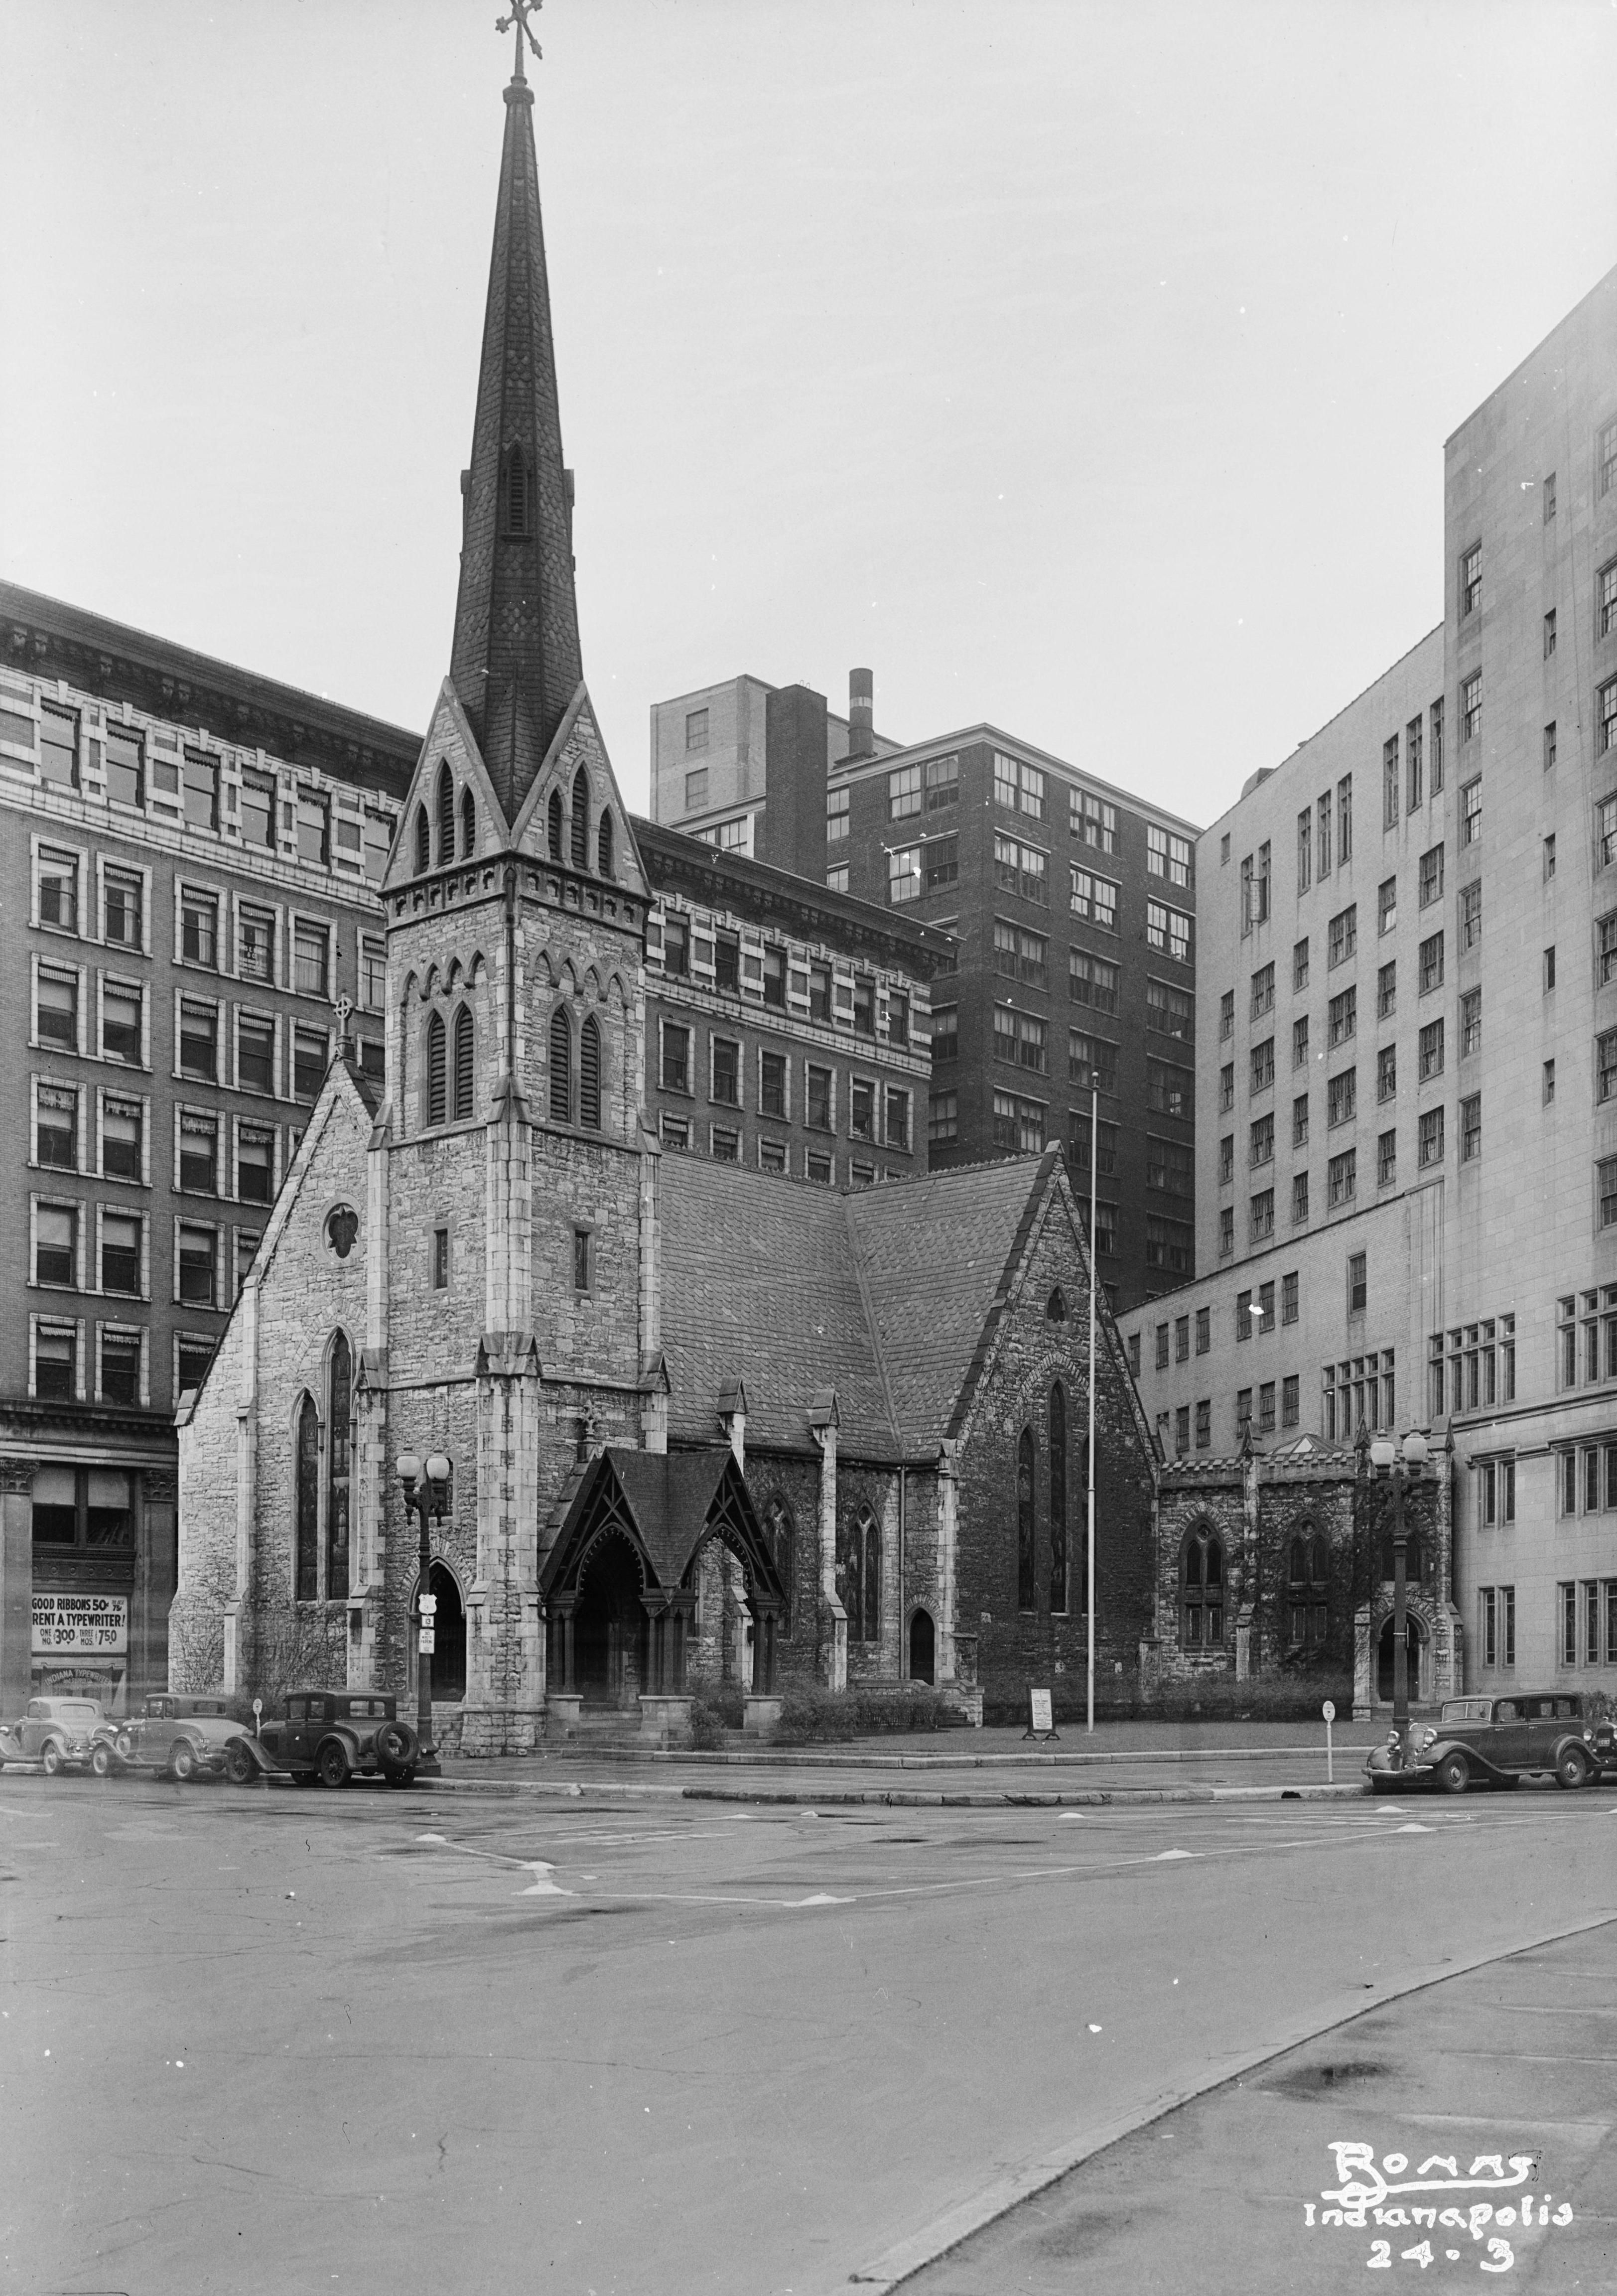 Indianapolis Then And Now Christ Church Cathedral 125 Monument Circle Historic Indianapolis All Things India Indianapolis Indiana Indianapolis Old Photos